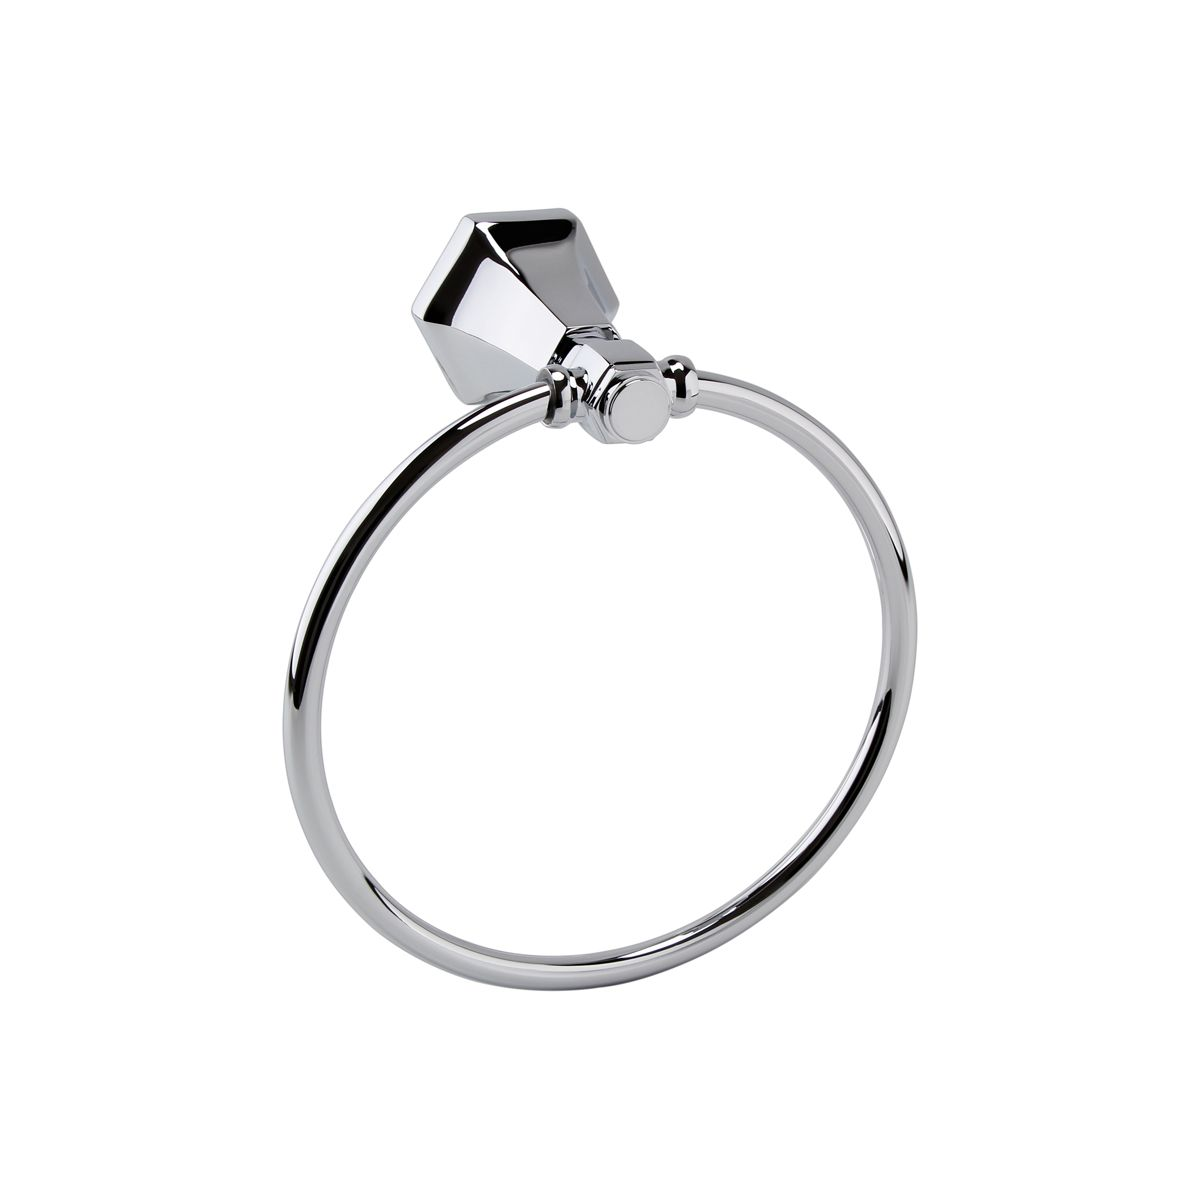 RAK Washington Polished Chrome Towel Ring